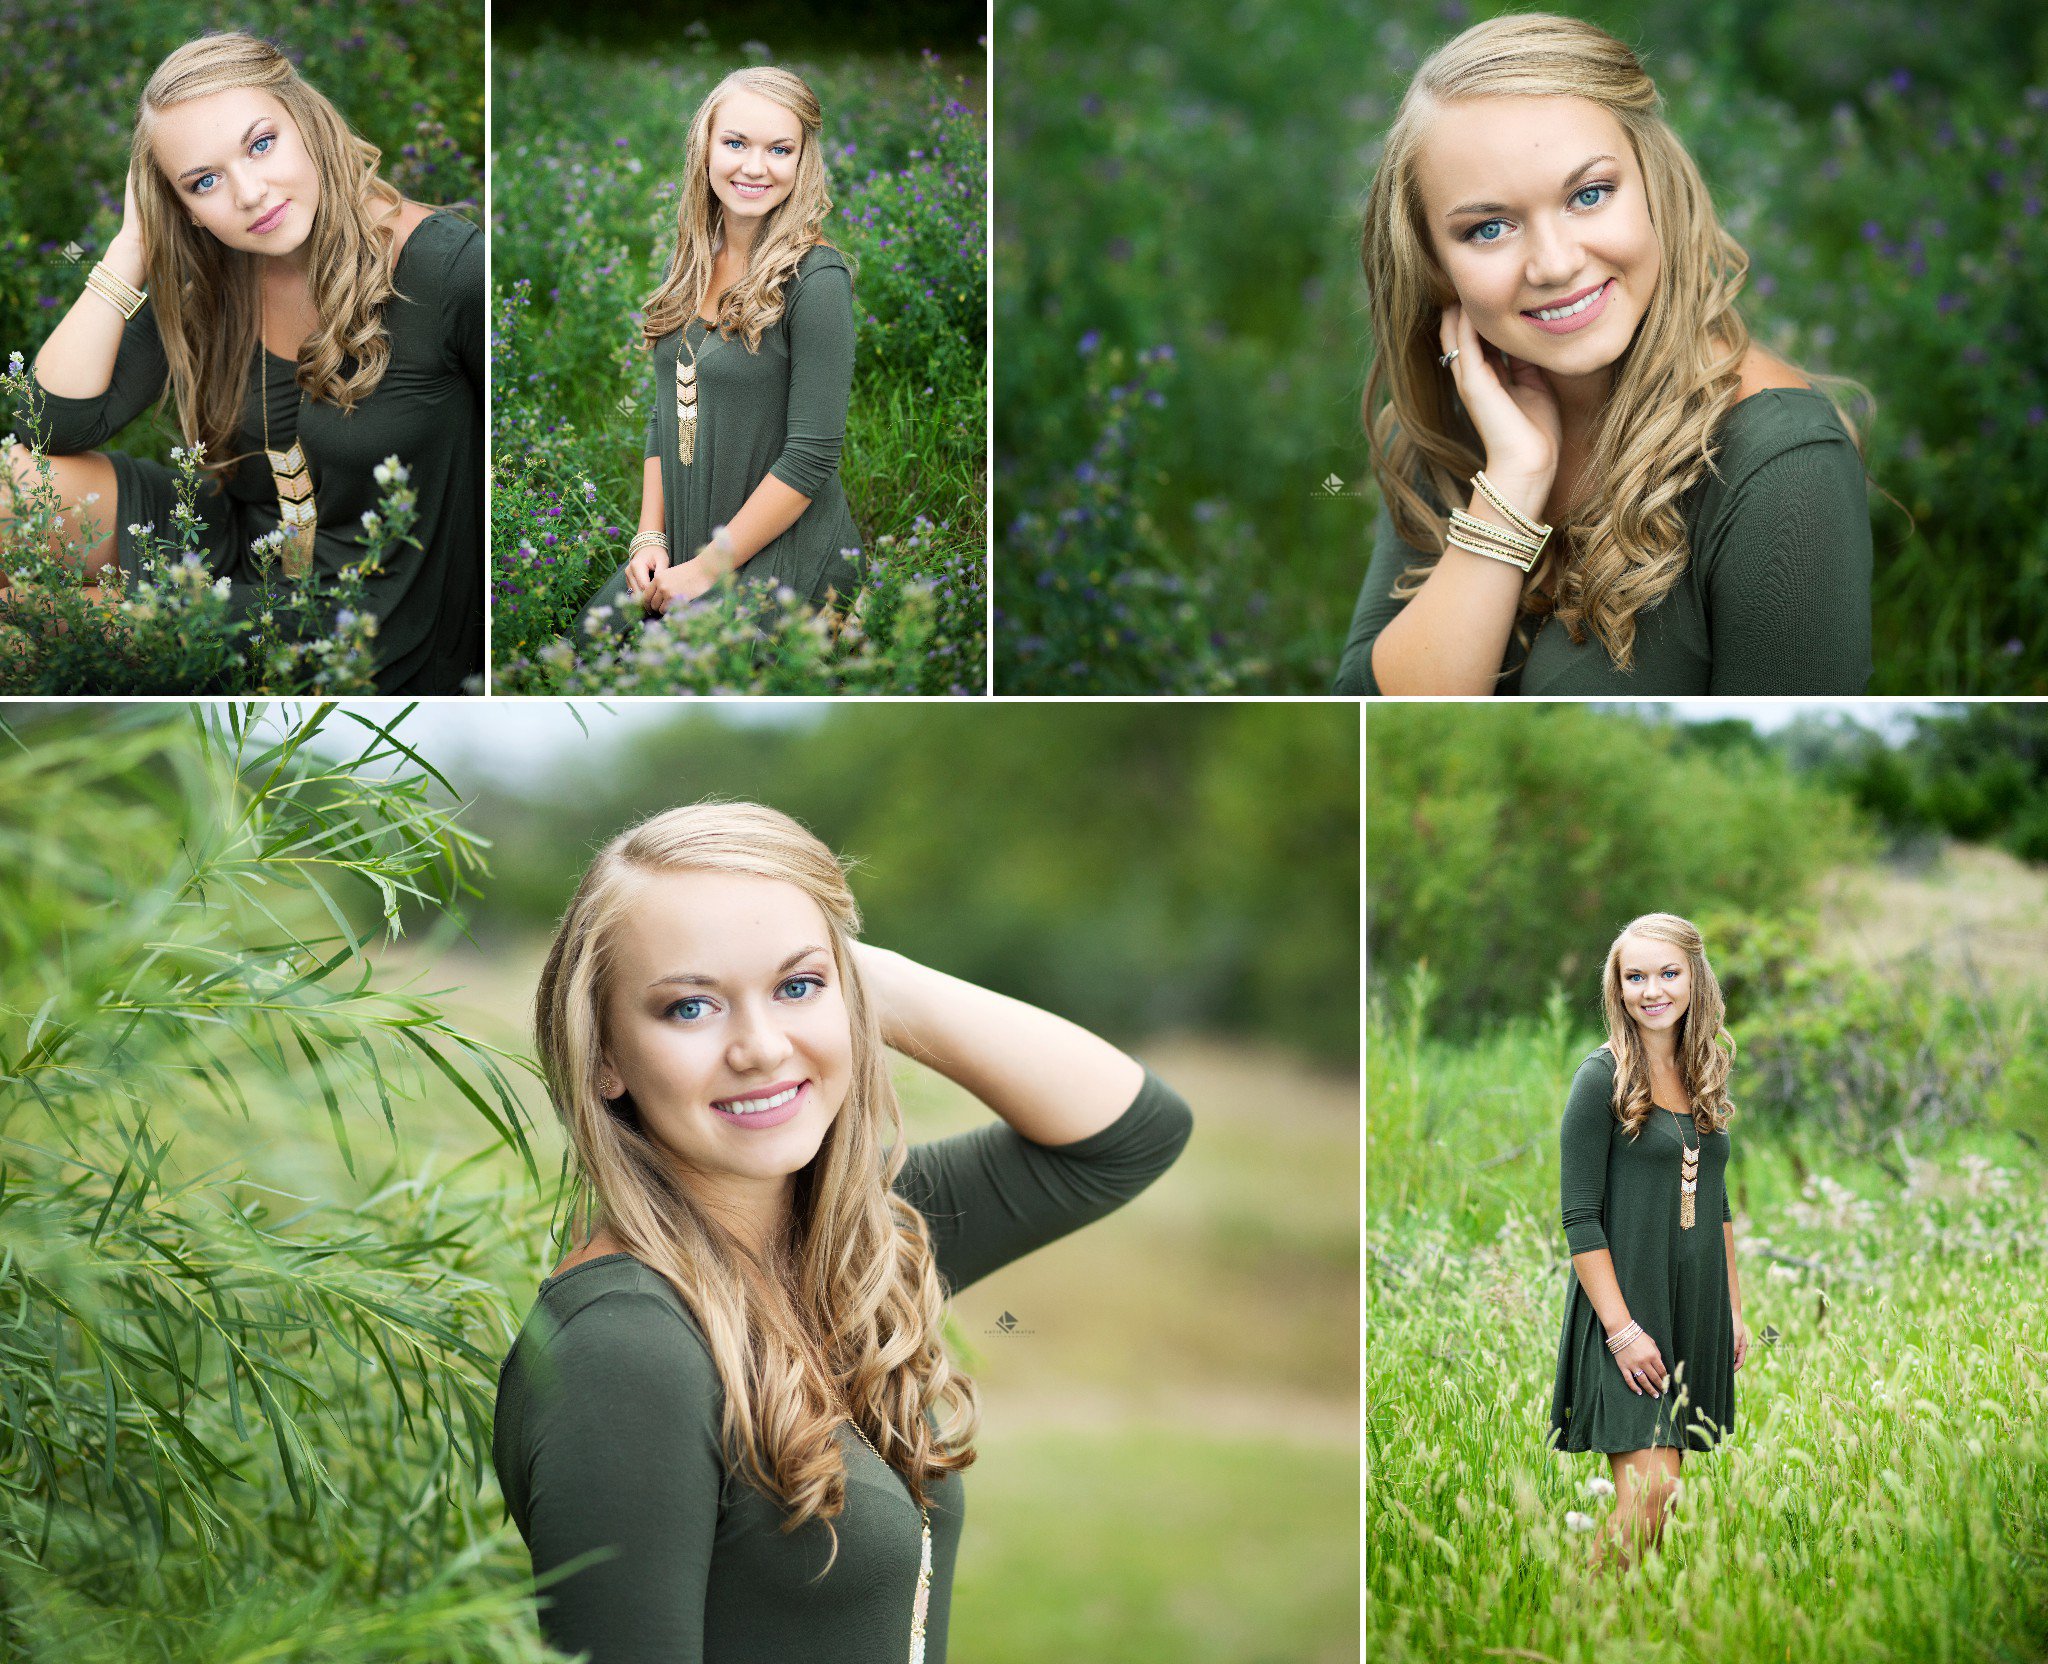 Flower Field Senior Images by Katie Swatek Photography | Olive Dress Senior Images by Katie Swatek Photography